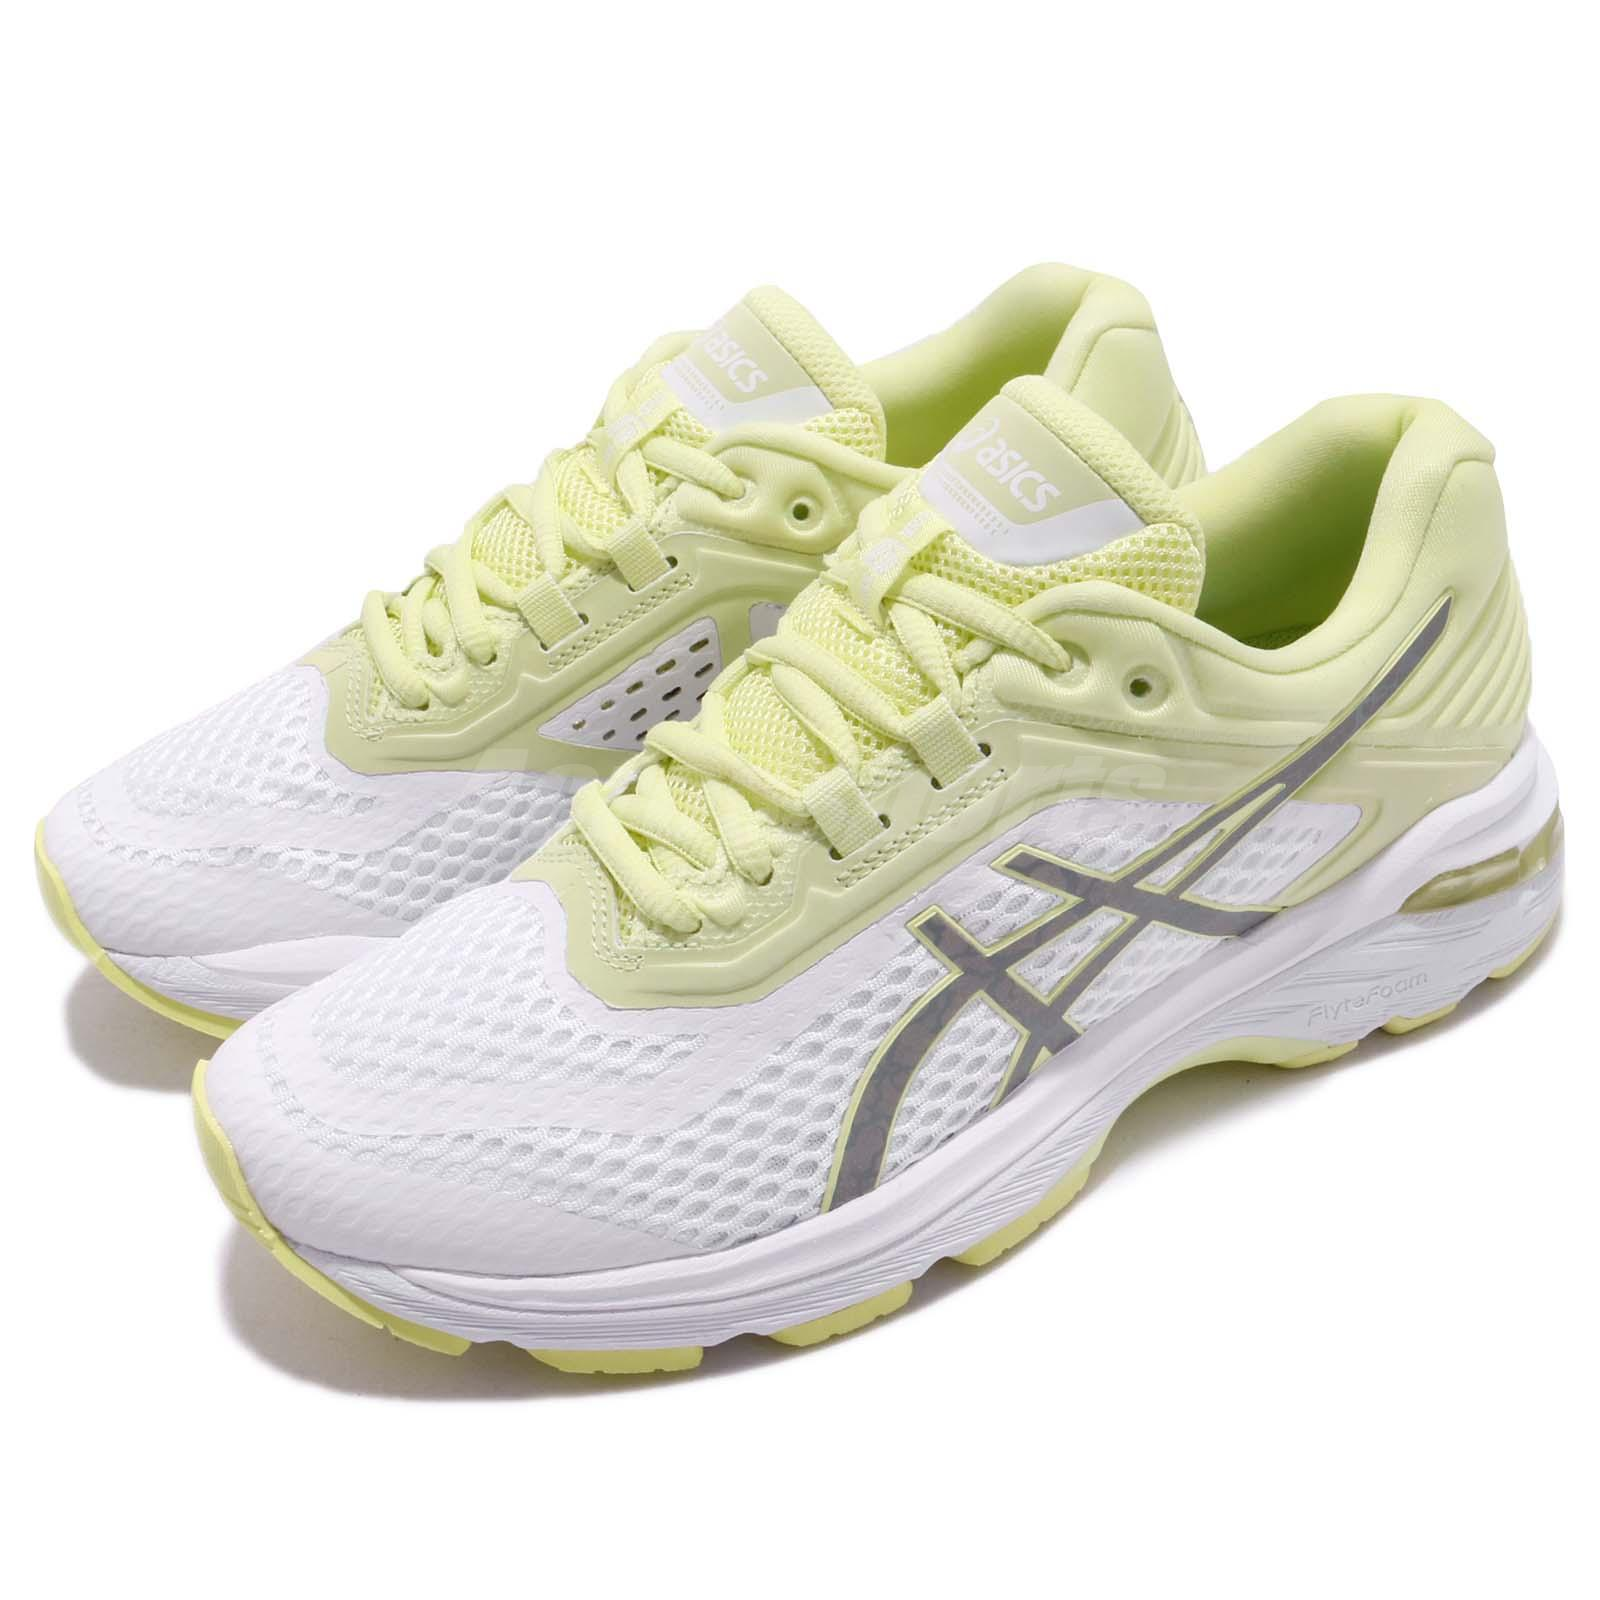 2dfa4cab19e7c Details about Asics GT-2000 6 Lite-Show White Silver Lime Light Women  Running Shoes T884N-0193